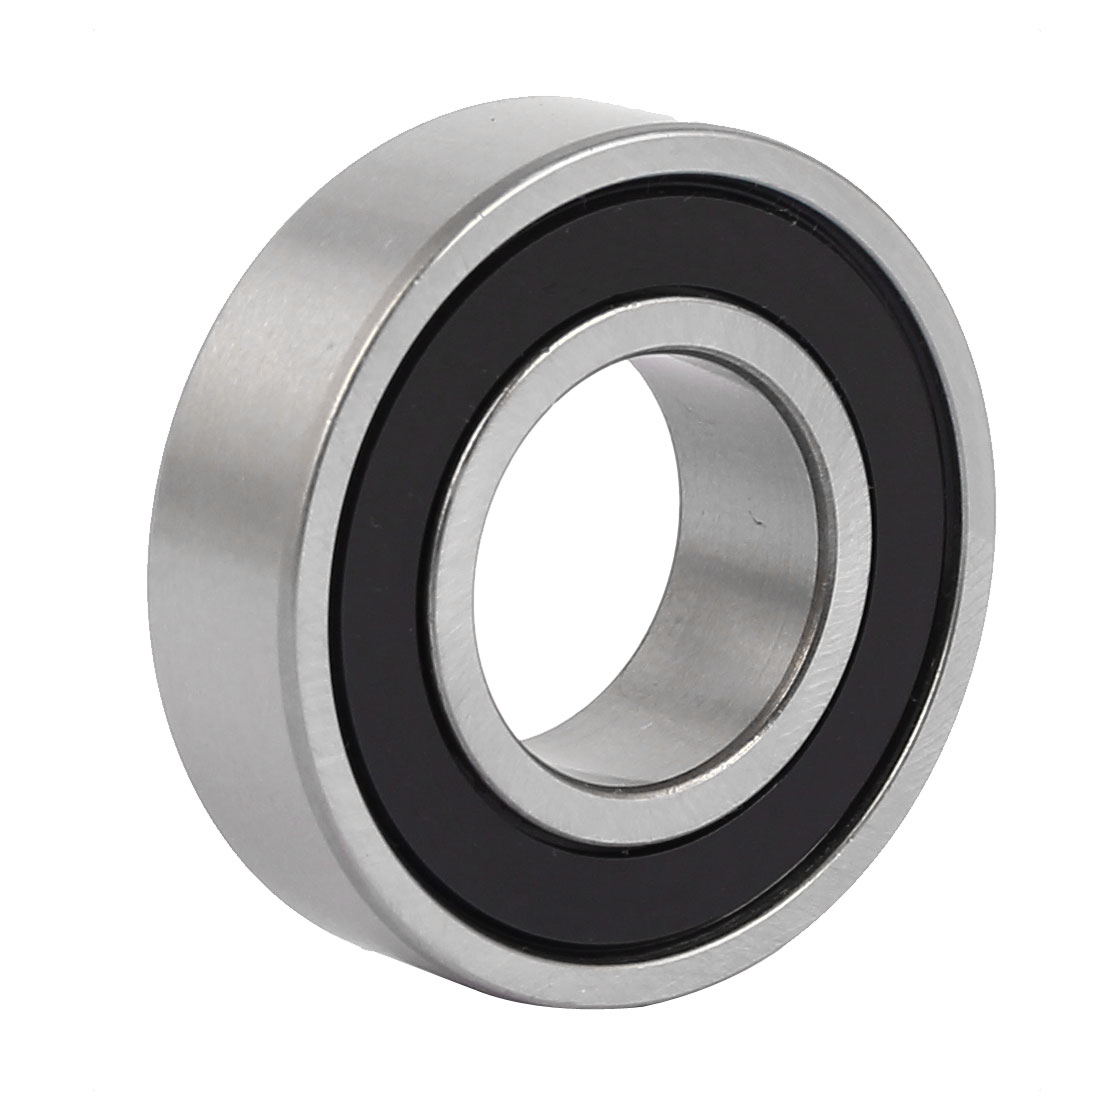 2RS6004 42mm x 20mm x 12mm Shielded Deep Groove Radial Ball Bearing